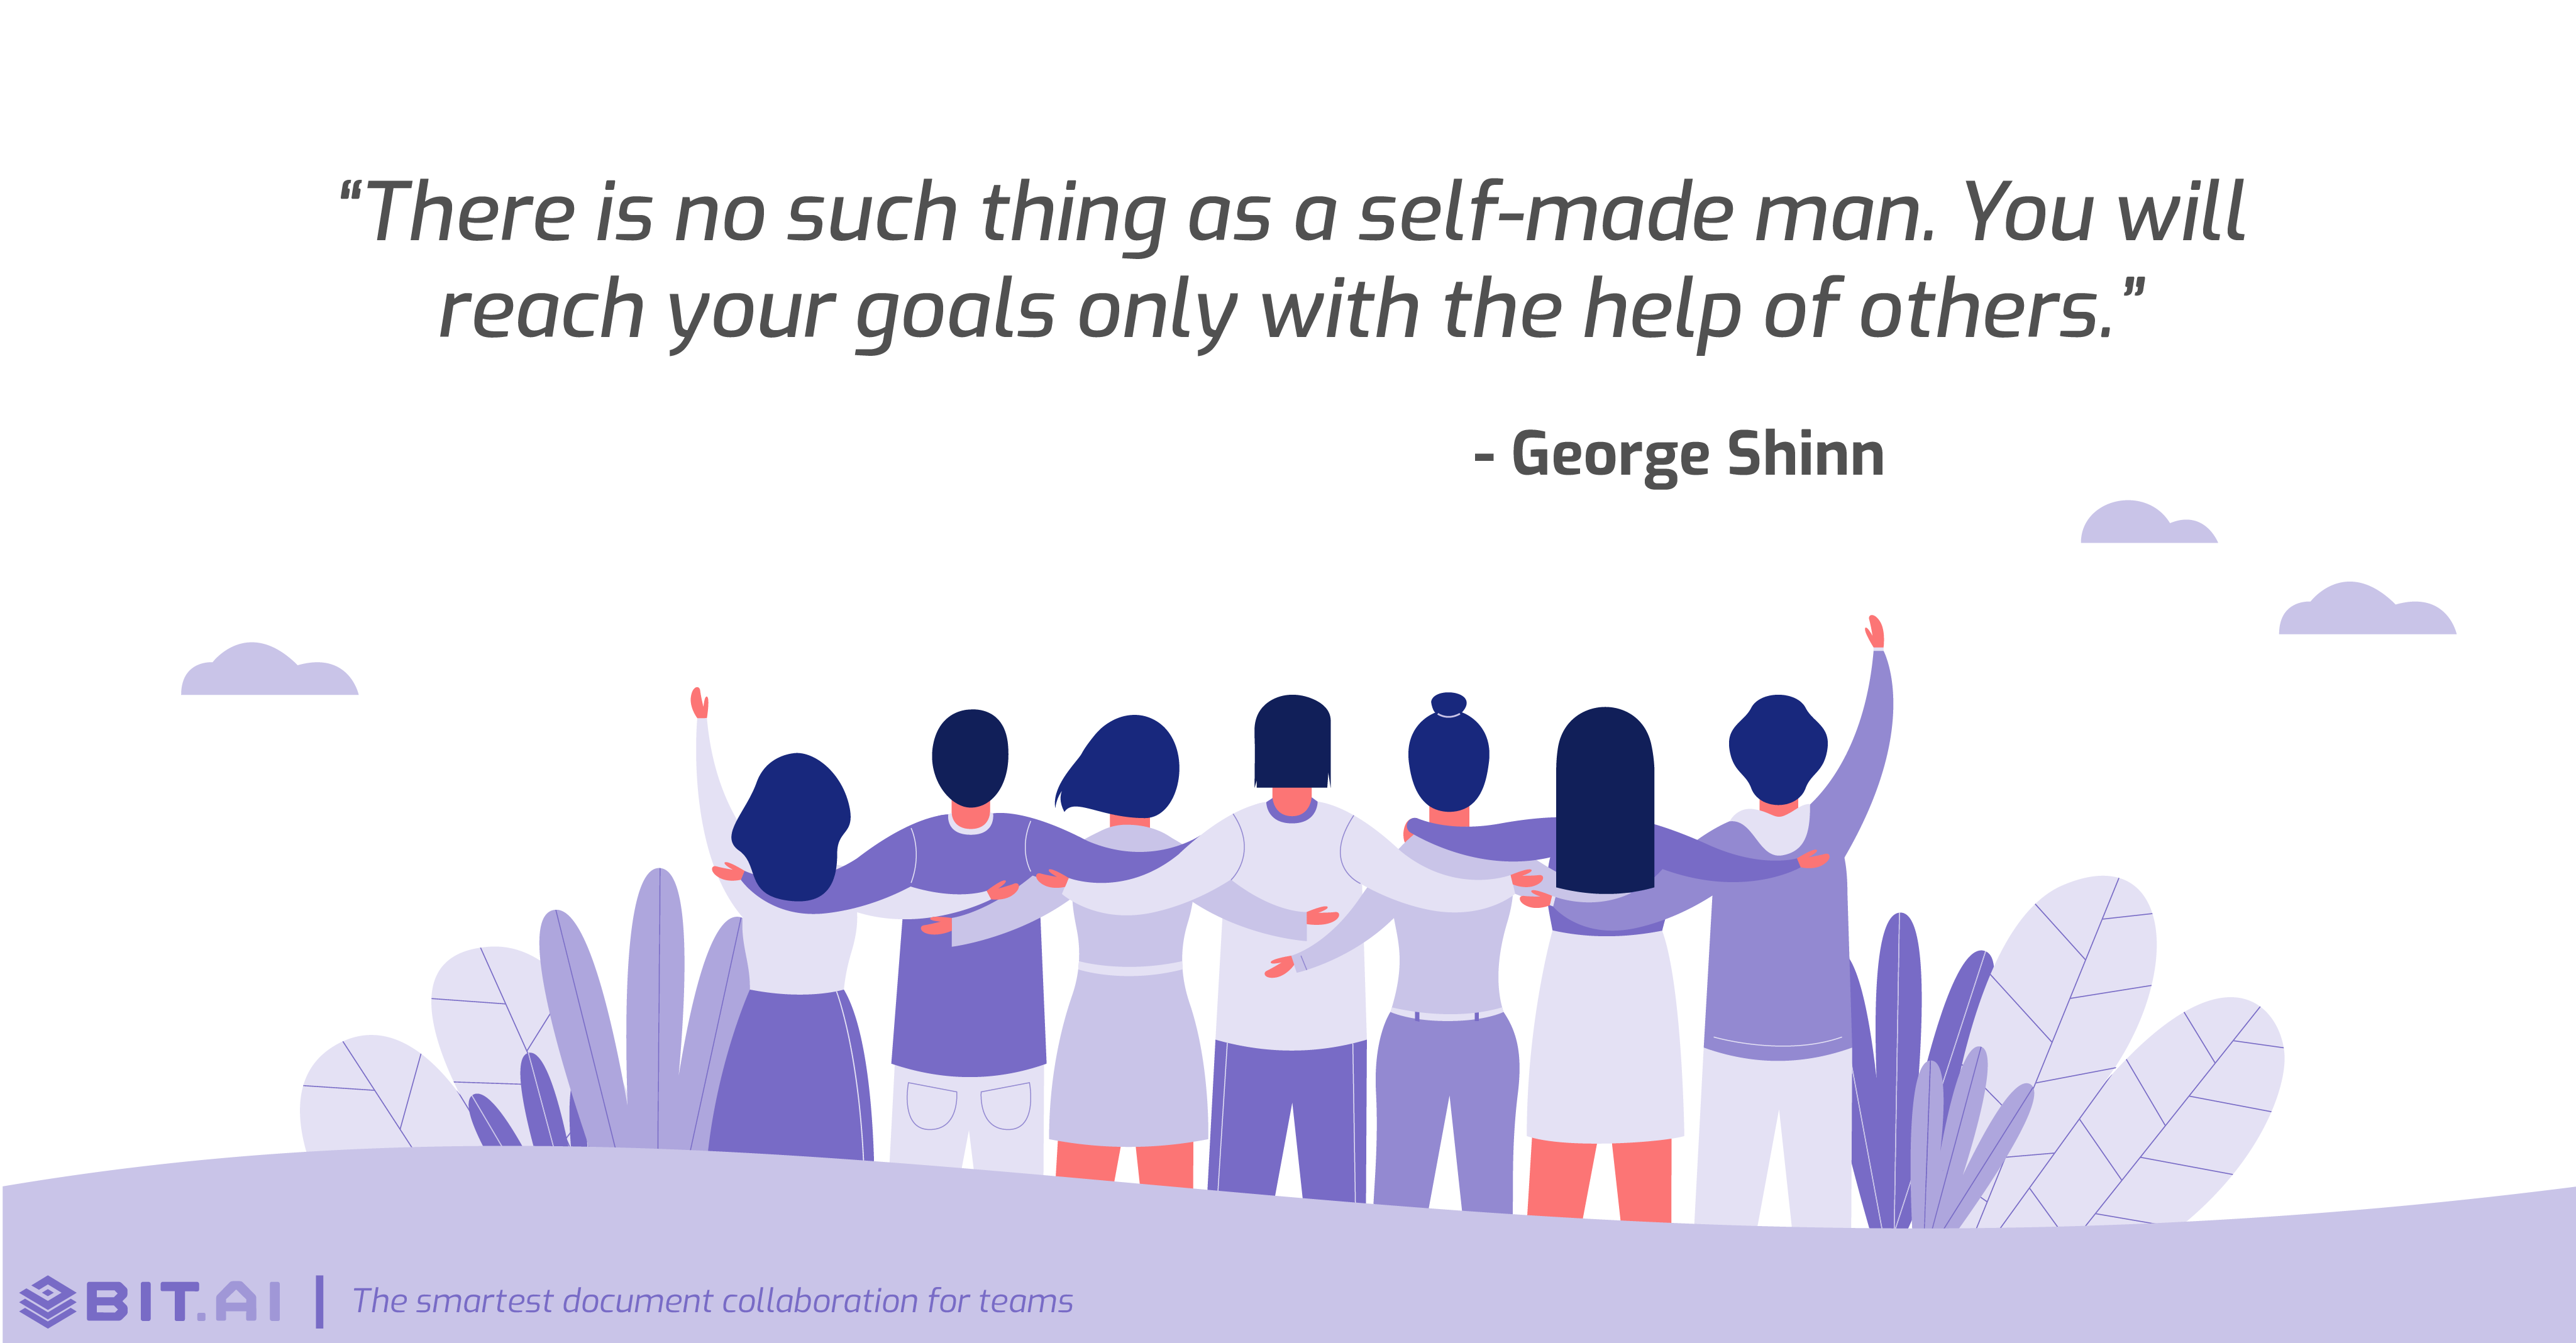 Teamwork collaboration quote by George Shinn